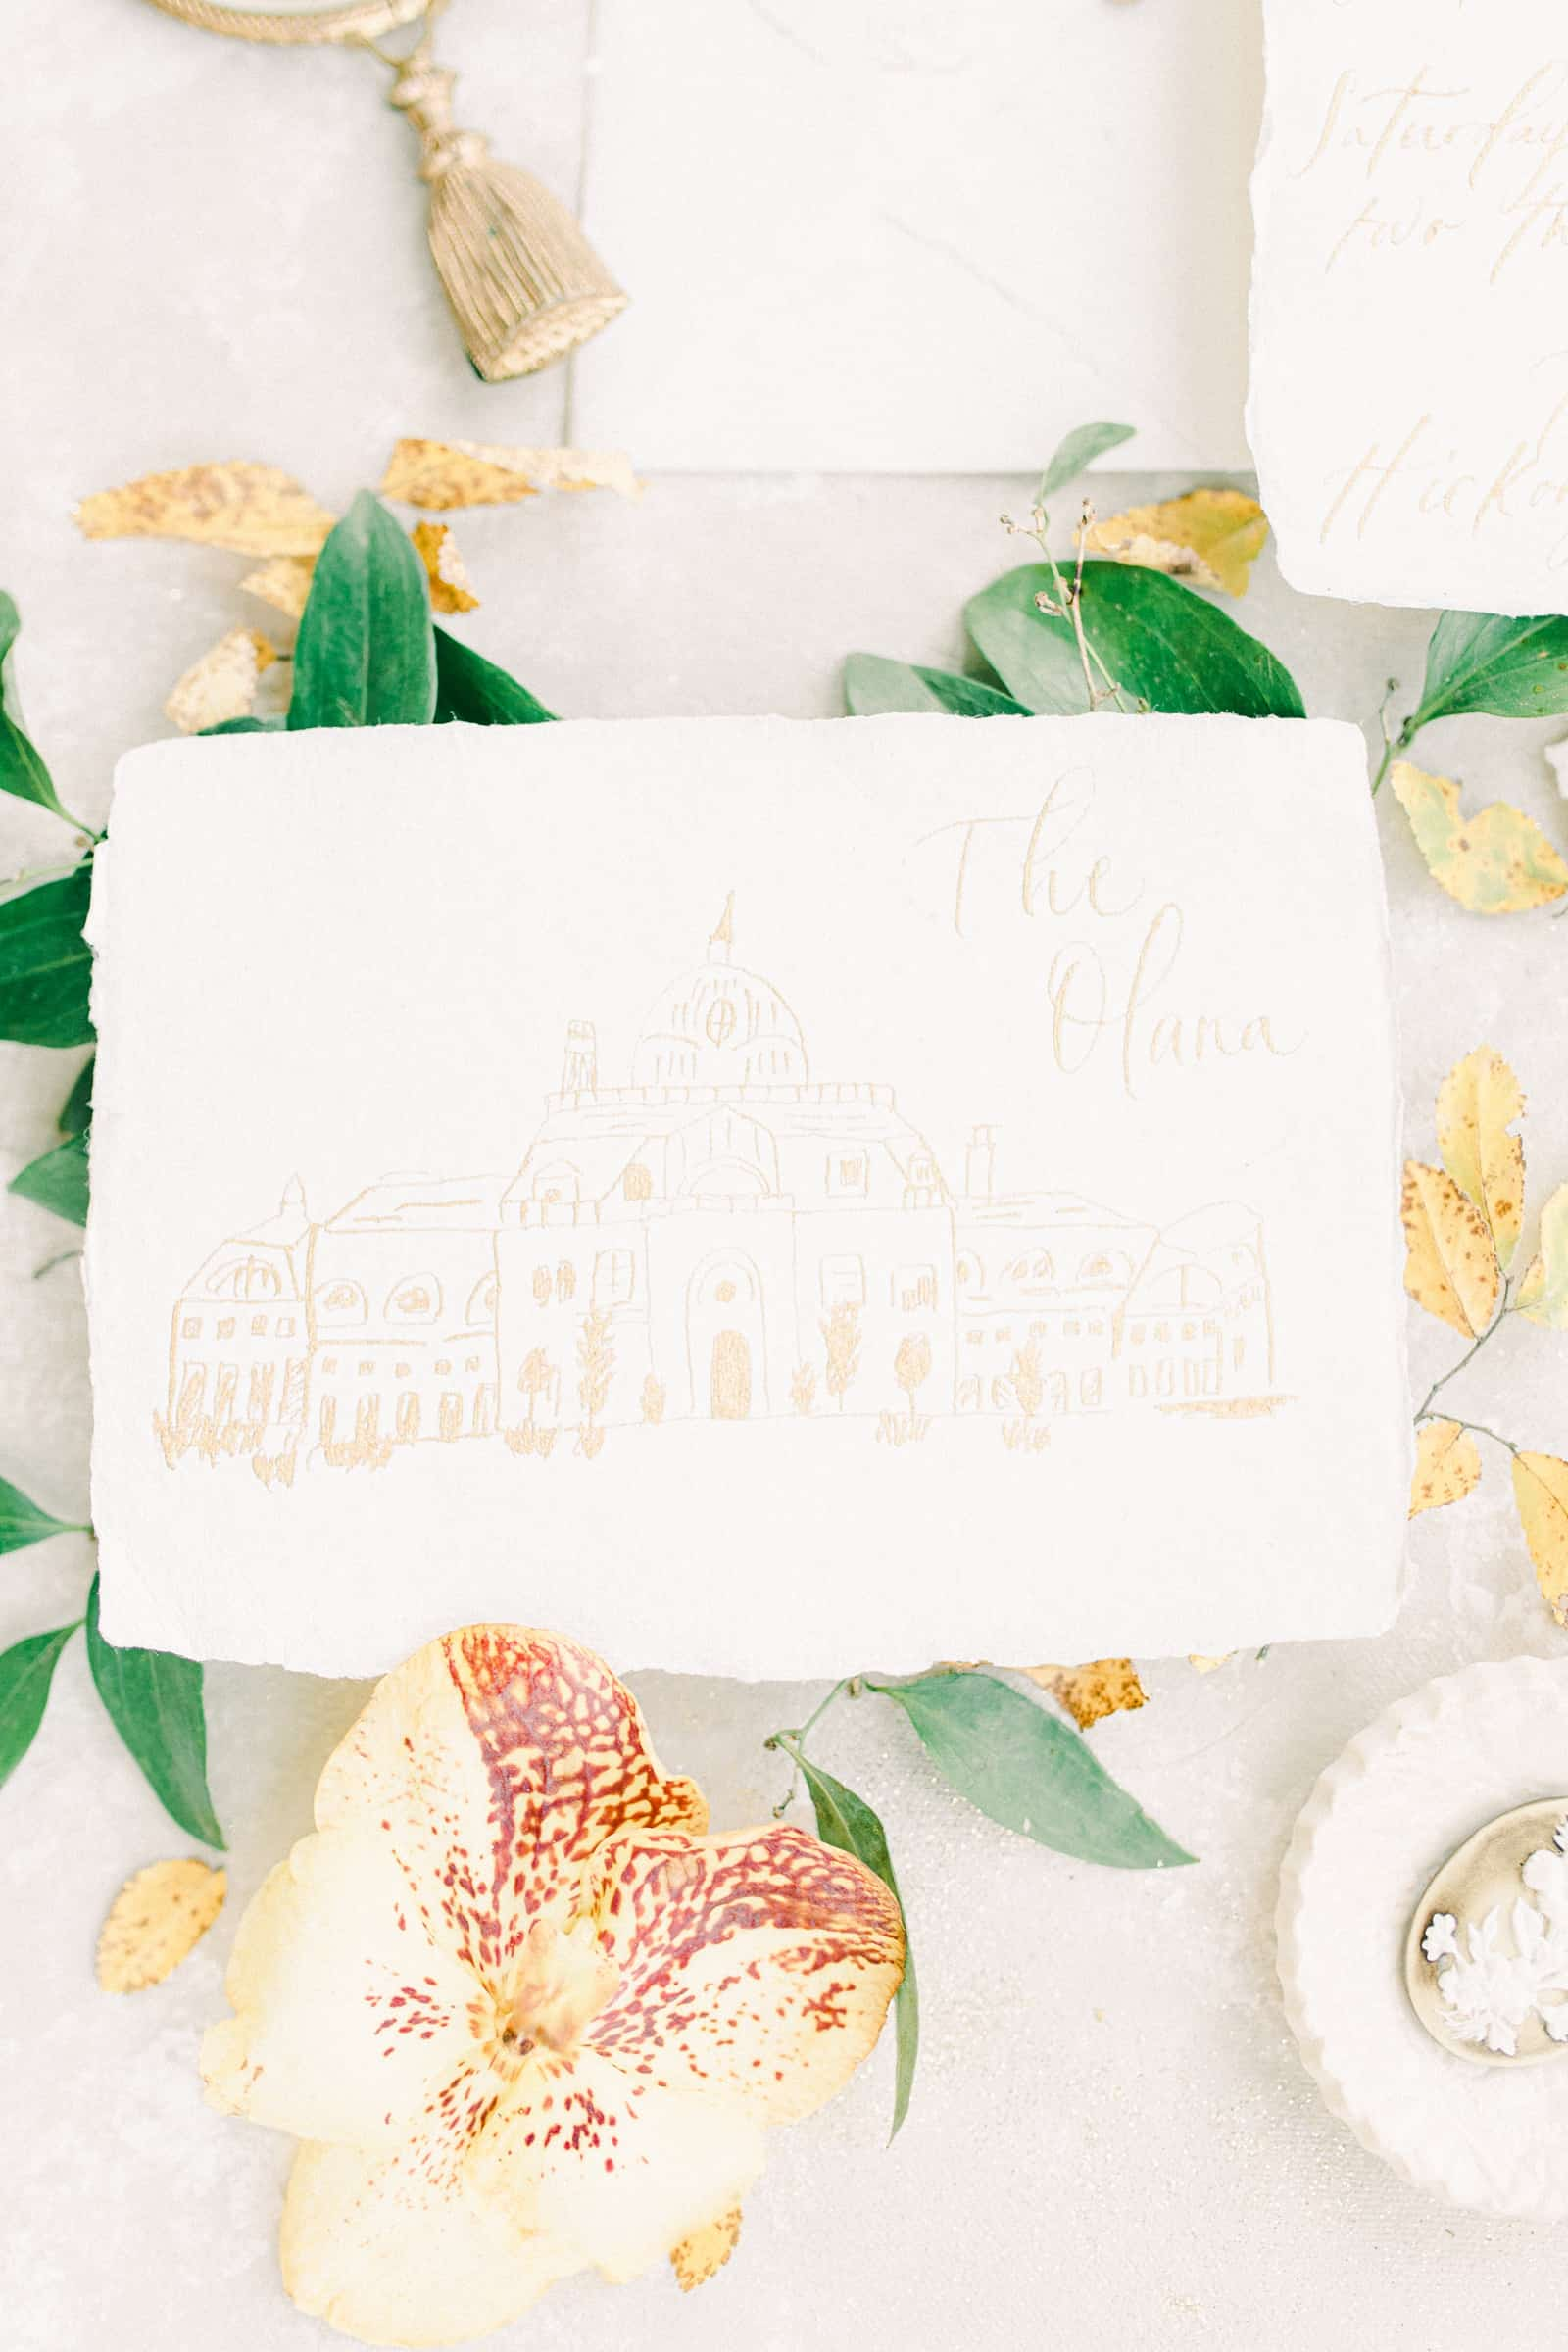 Wedding venue drawing, sketch with gold ink, wedding invitation suite